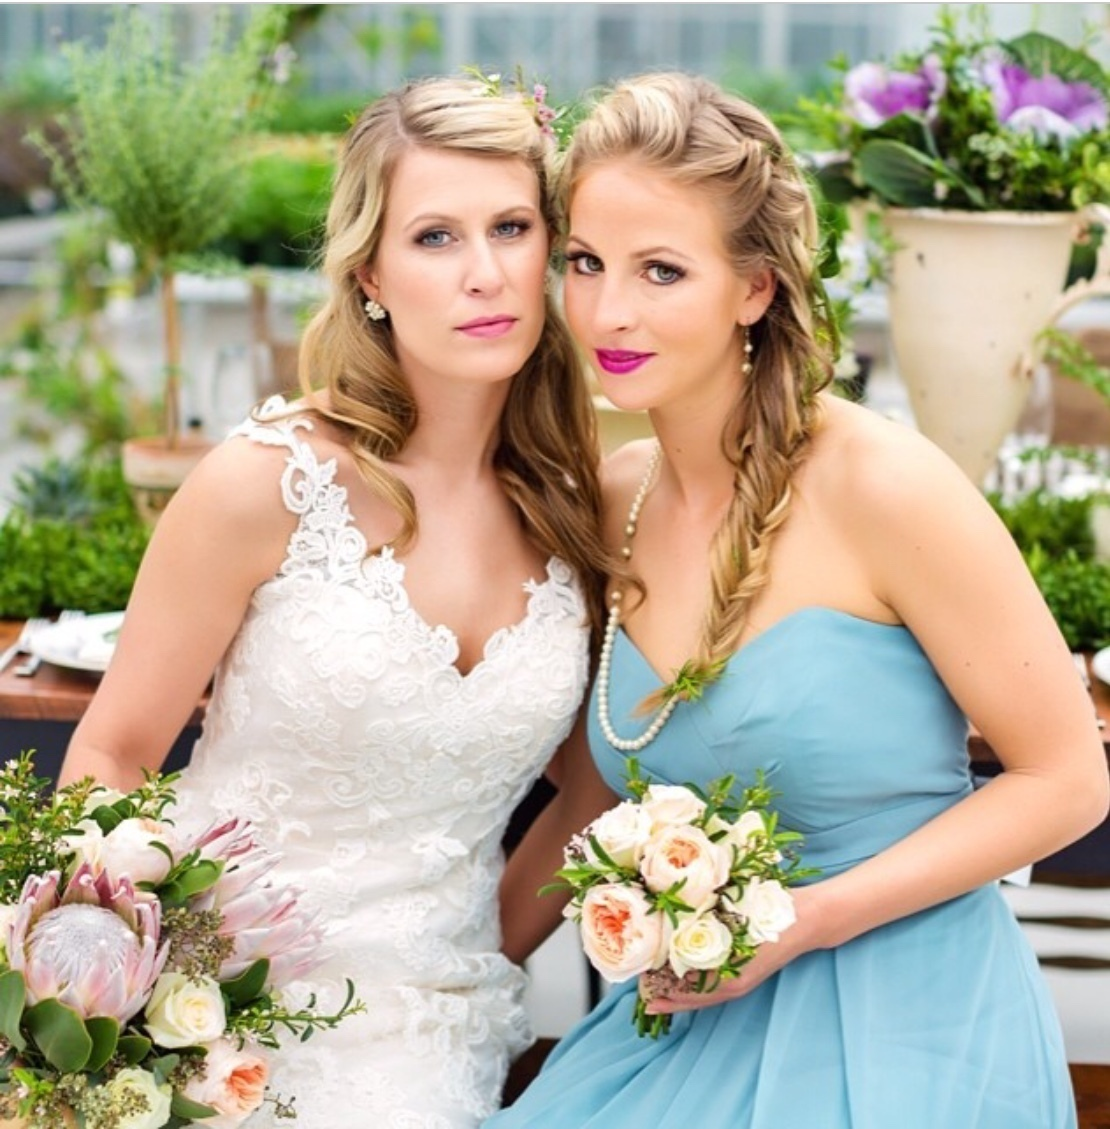 grand rapids wedding hair & makeup - reviews for 74 hair & makeup